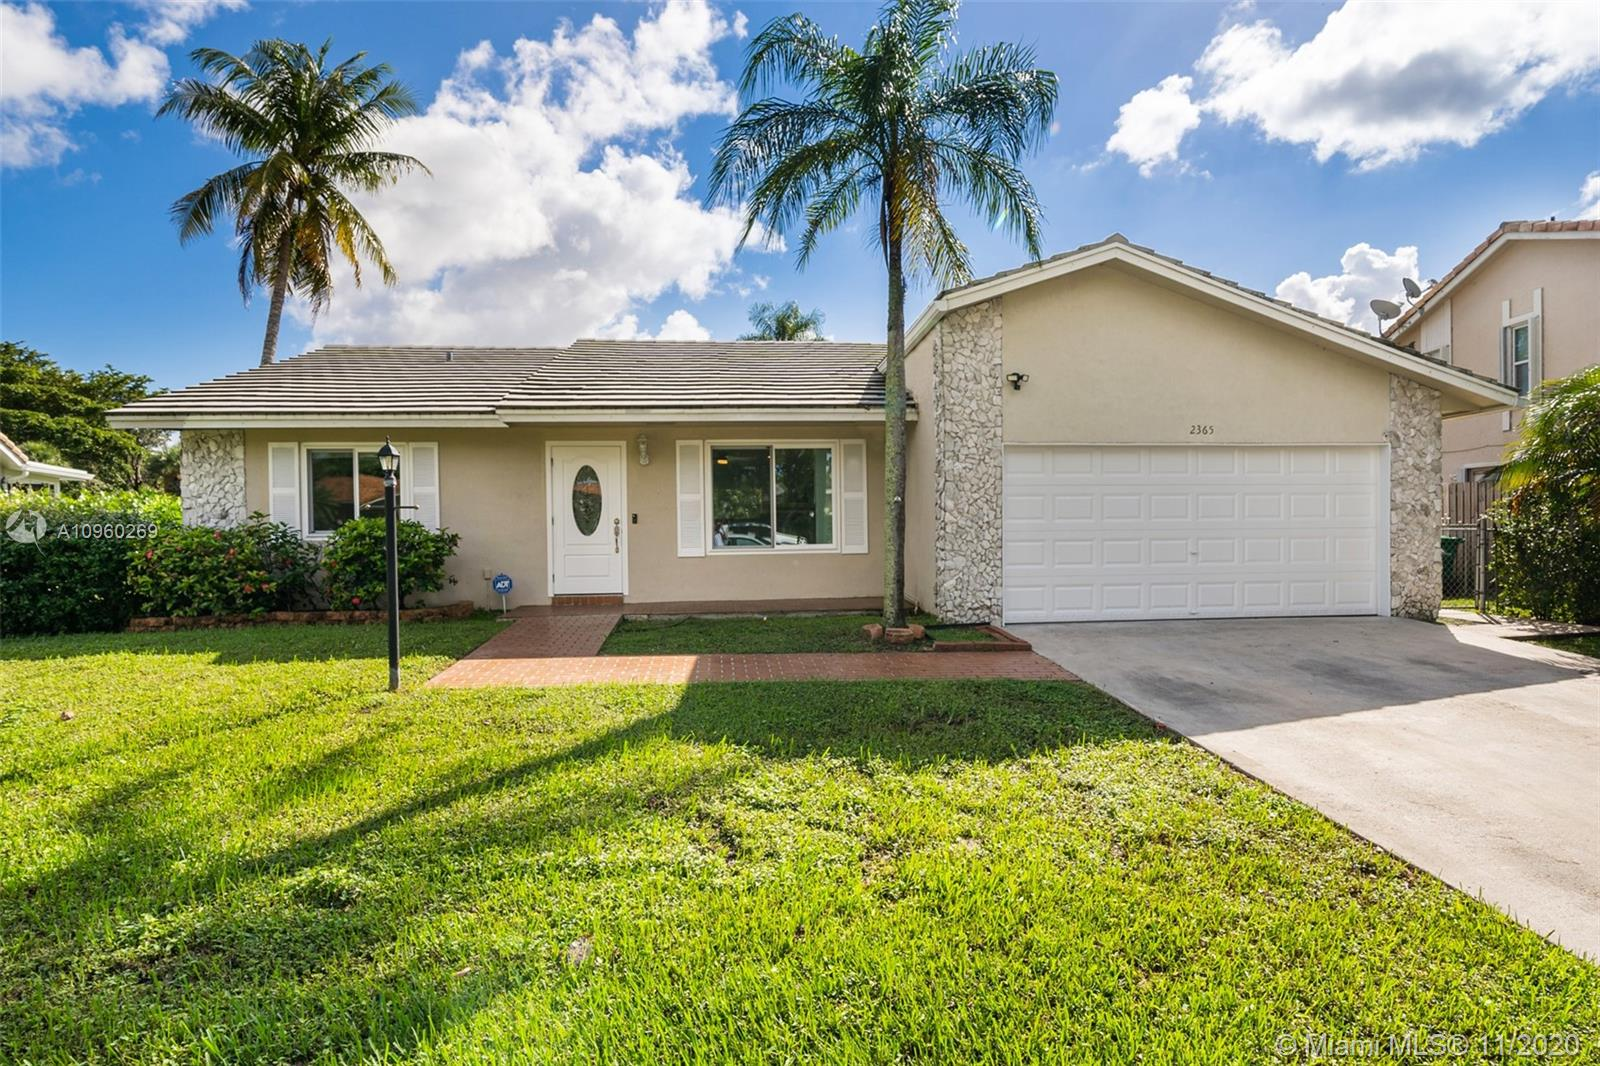 Elegant and renovated 3 beds 2 bath home in the neighborhood of Coral Springs. Perfect for a growing family, this home is in a great school district with elementary, middle, and high schools within walking distance. The home features a number of upgrades including a full home sound system with 5 dedicated zones, recently renovated bathrooms, brand new porcelain flooring in all bedrooms, ceiling fans, recess lighting throughout common areas and in the master bedroom. Fall in love with the covered patio overlooking your newly refurbished pool, updated exterior electrical power service panel, hurricane impact windows, and doors throughout the entire home, a double car garage with a hurricane grade double car garage door, new garage door motor, and epoxy flooring.